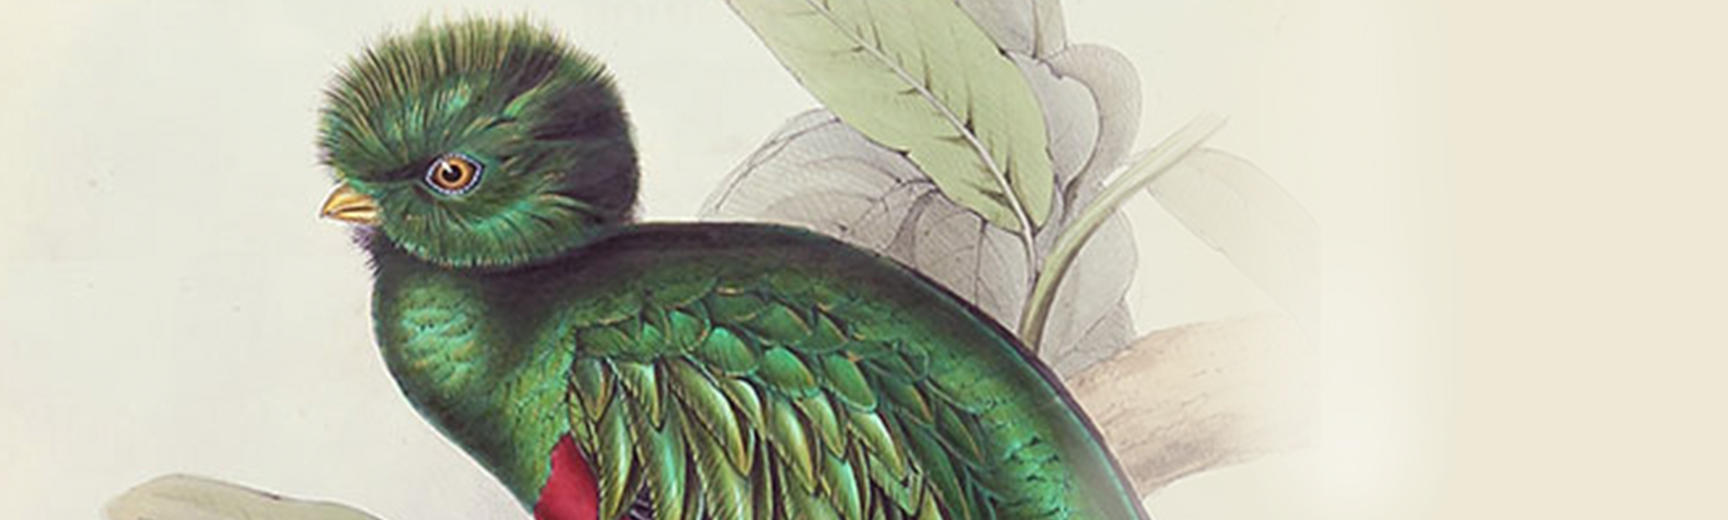 Detail of an exotic green bird from a lavishly illustrated natural history book